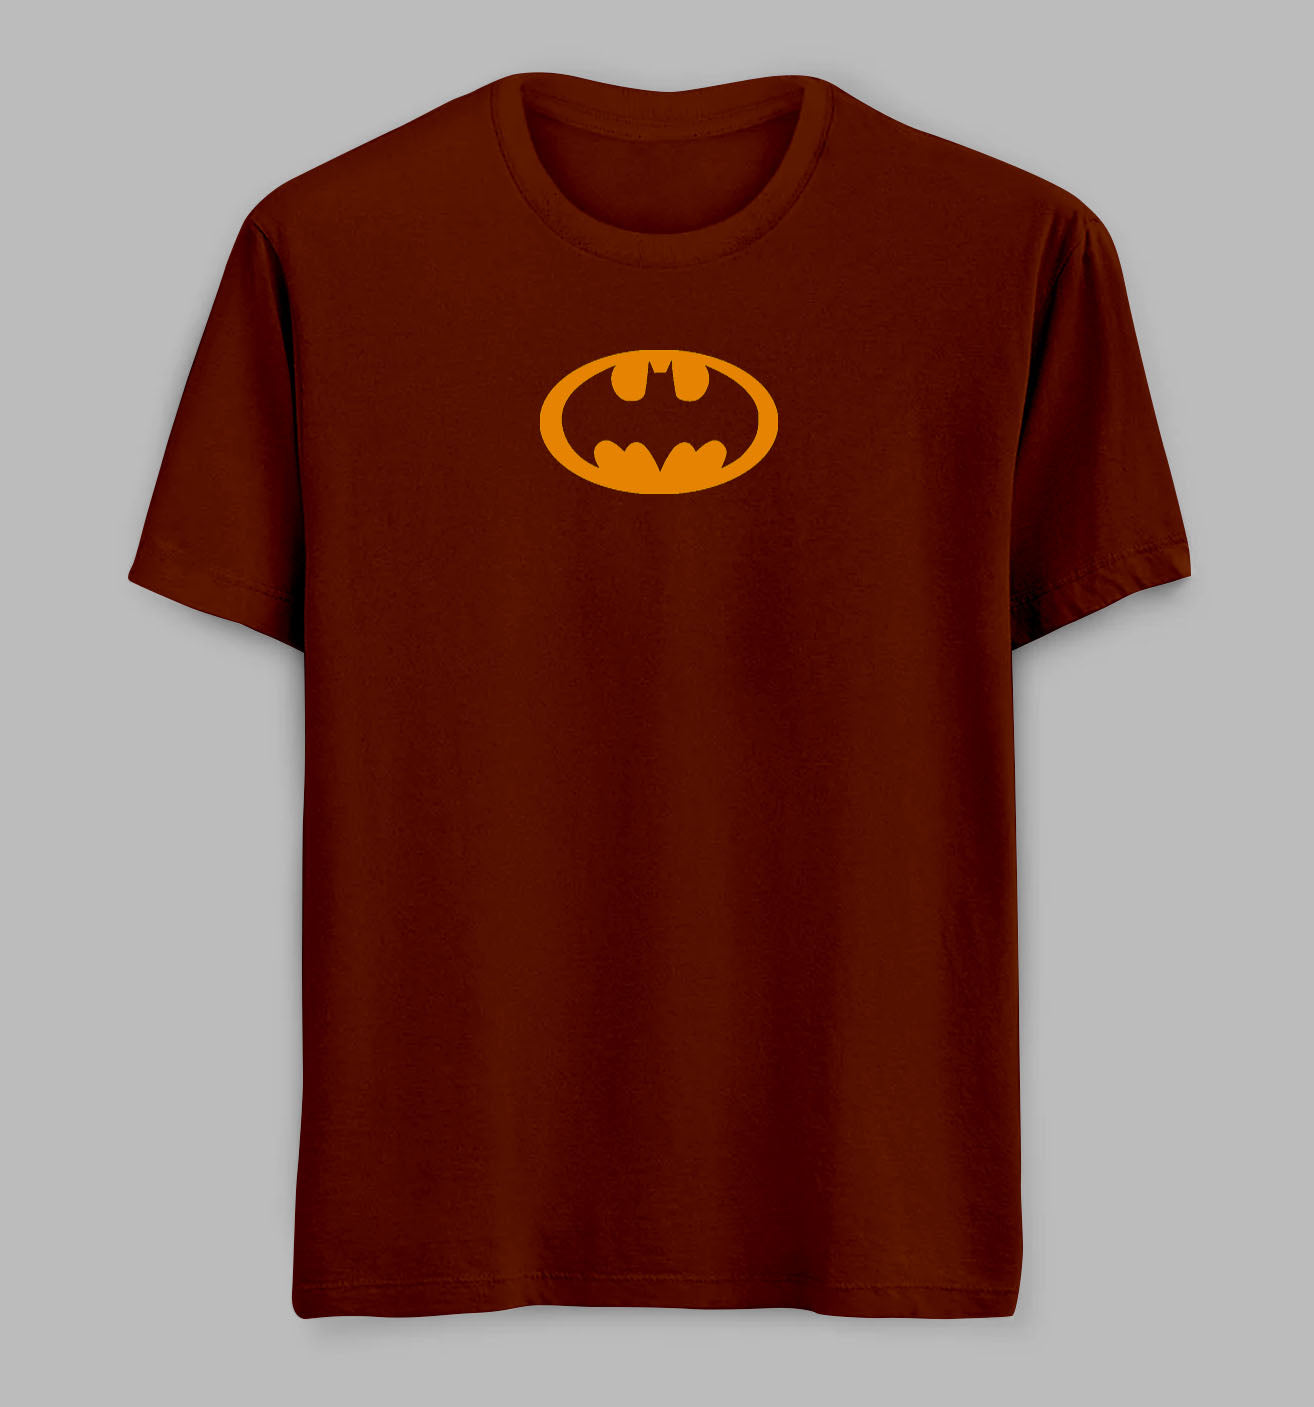 Batman Tees/ Tshirts